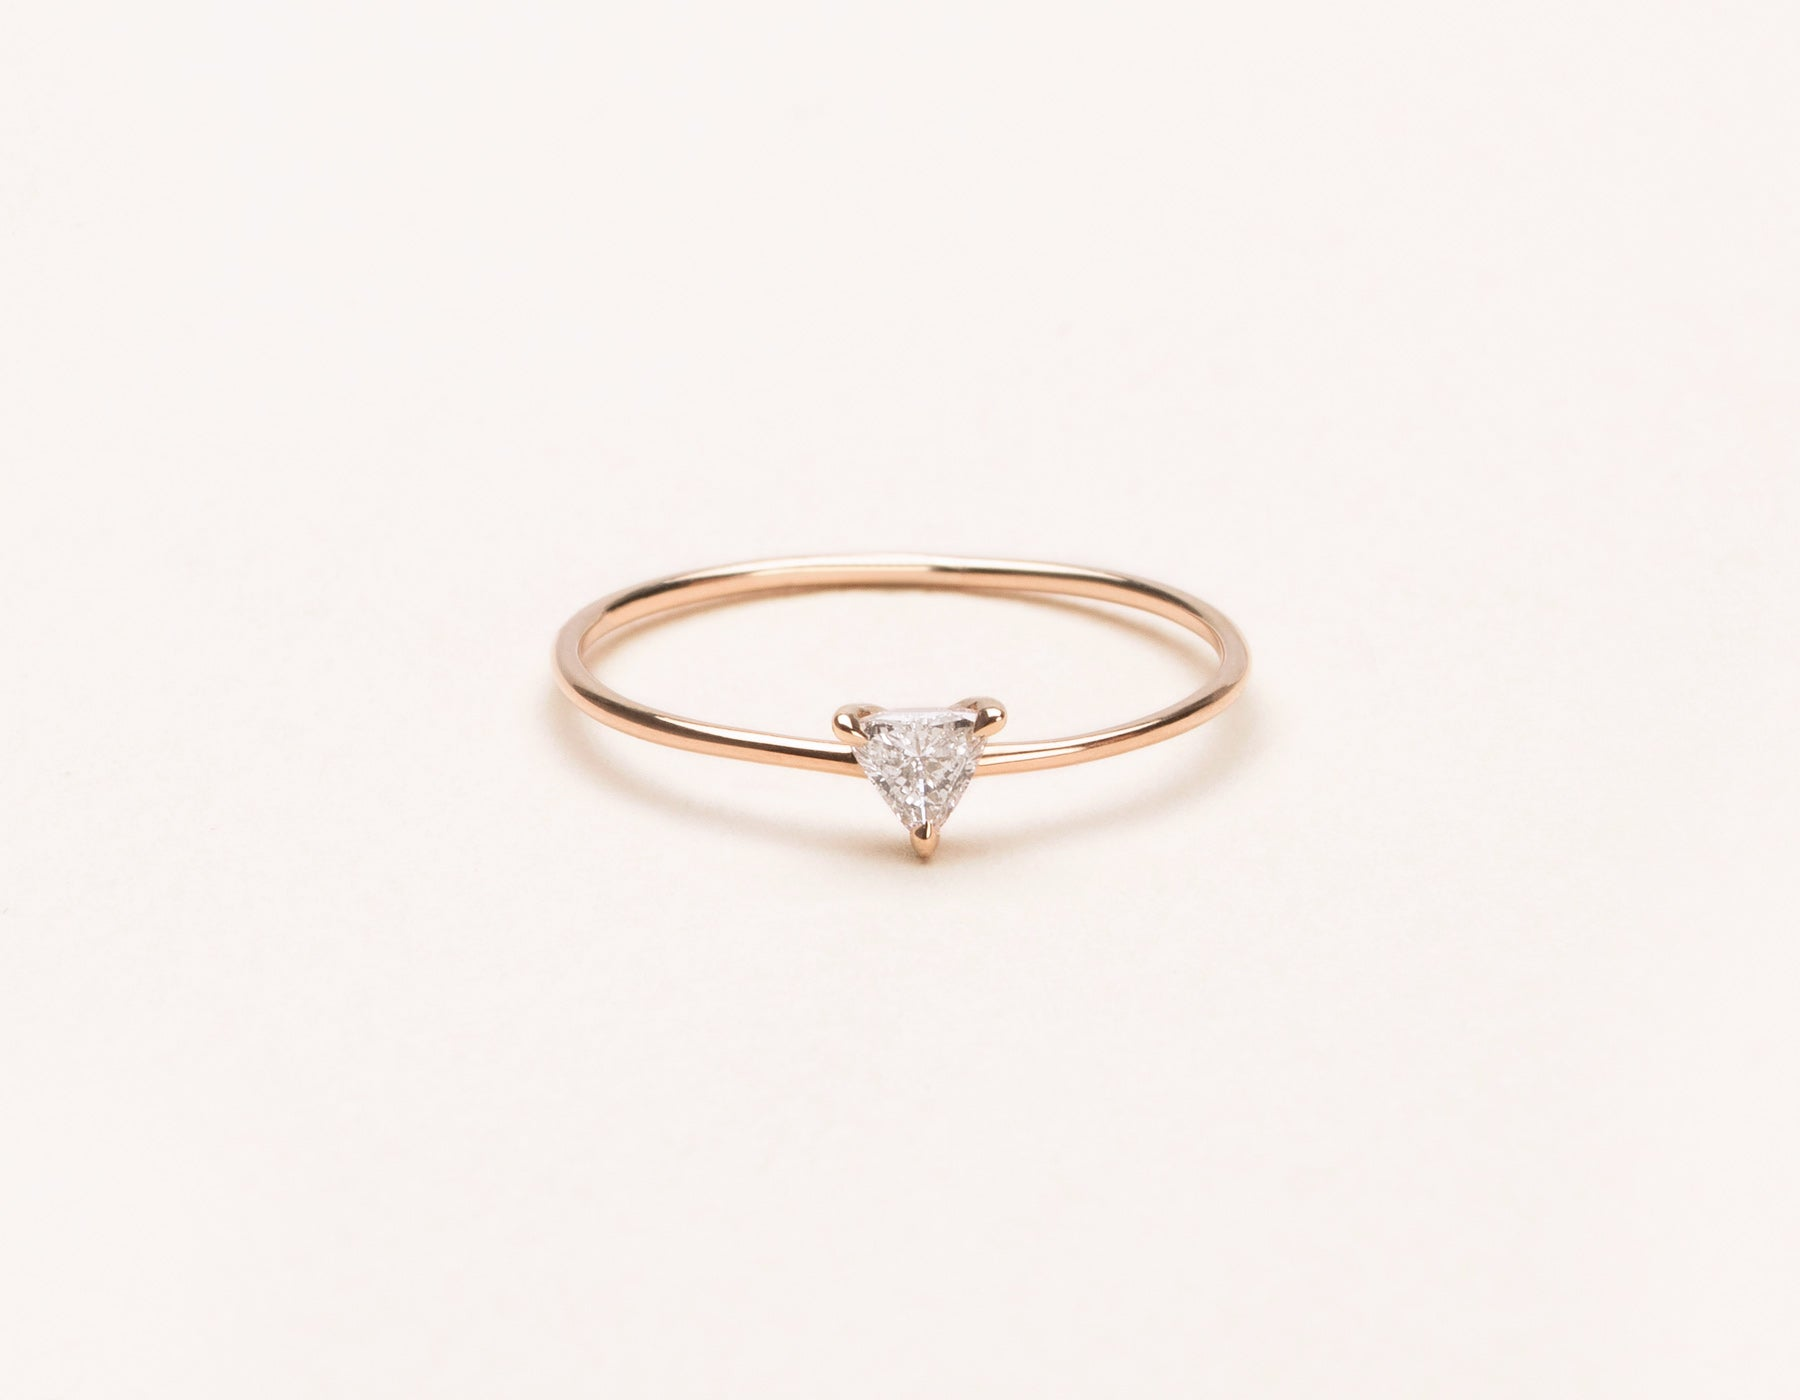 Simple modern Trillion Diamond Ring stacker Vrai and Oro minimalist jewelry, 14K Rose Gold